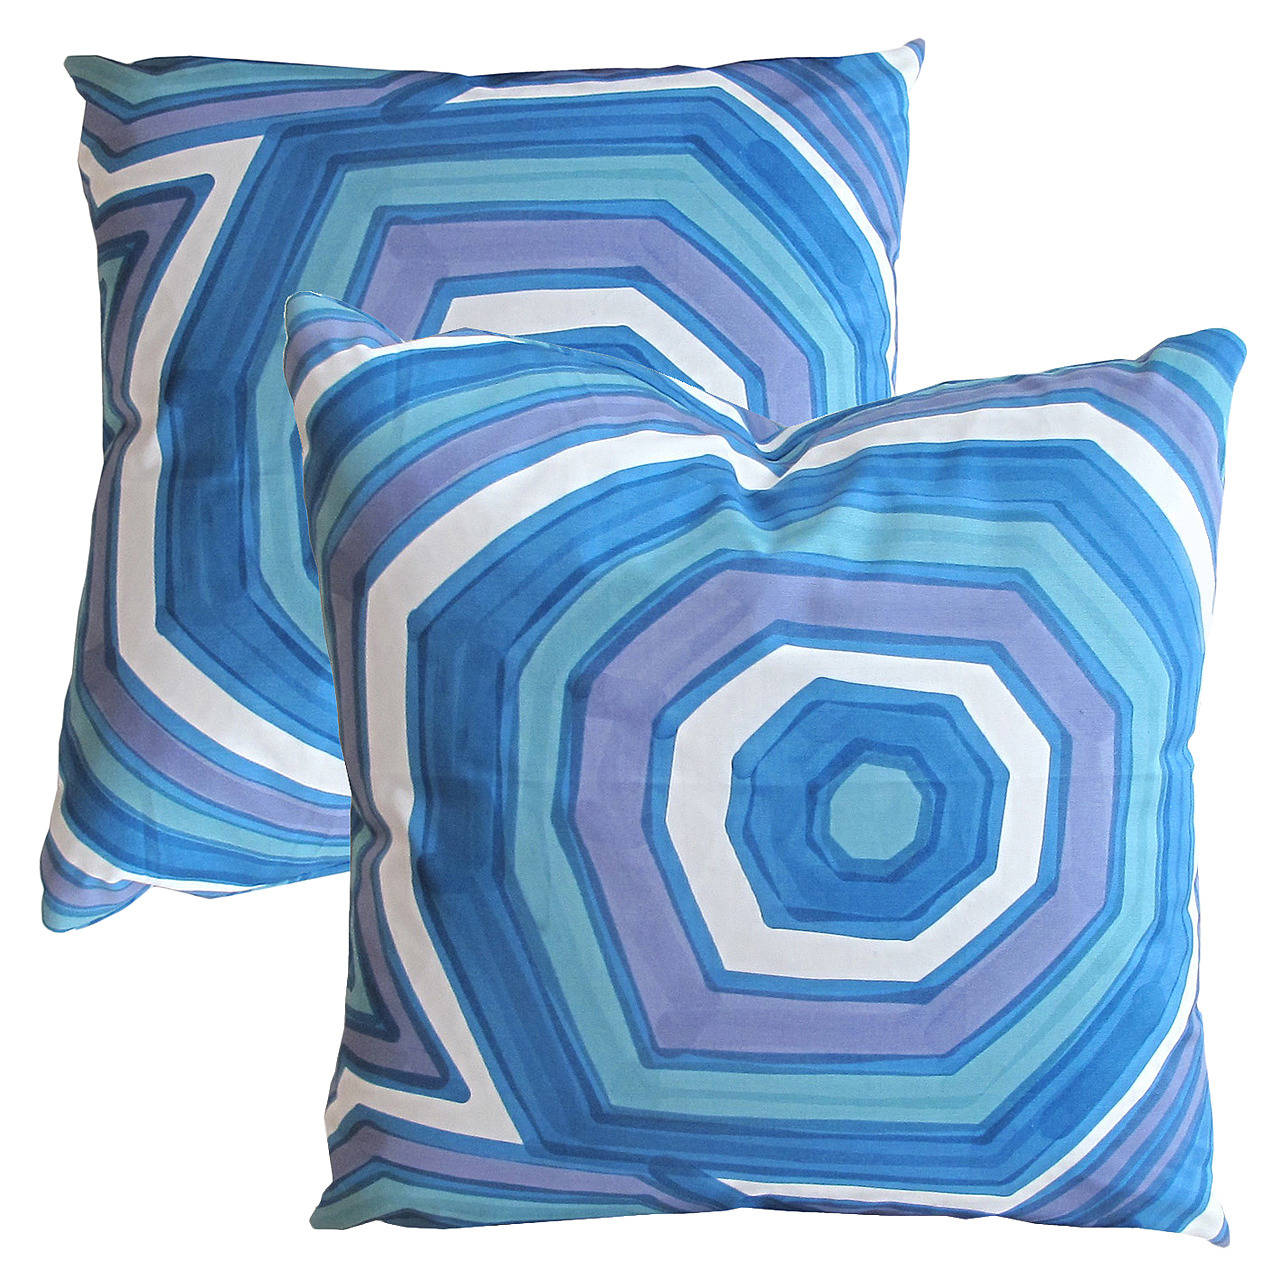 Blue geometric rings hand painted livio de simone pillow for Hand painted pillows